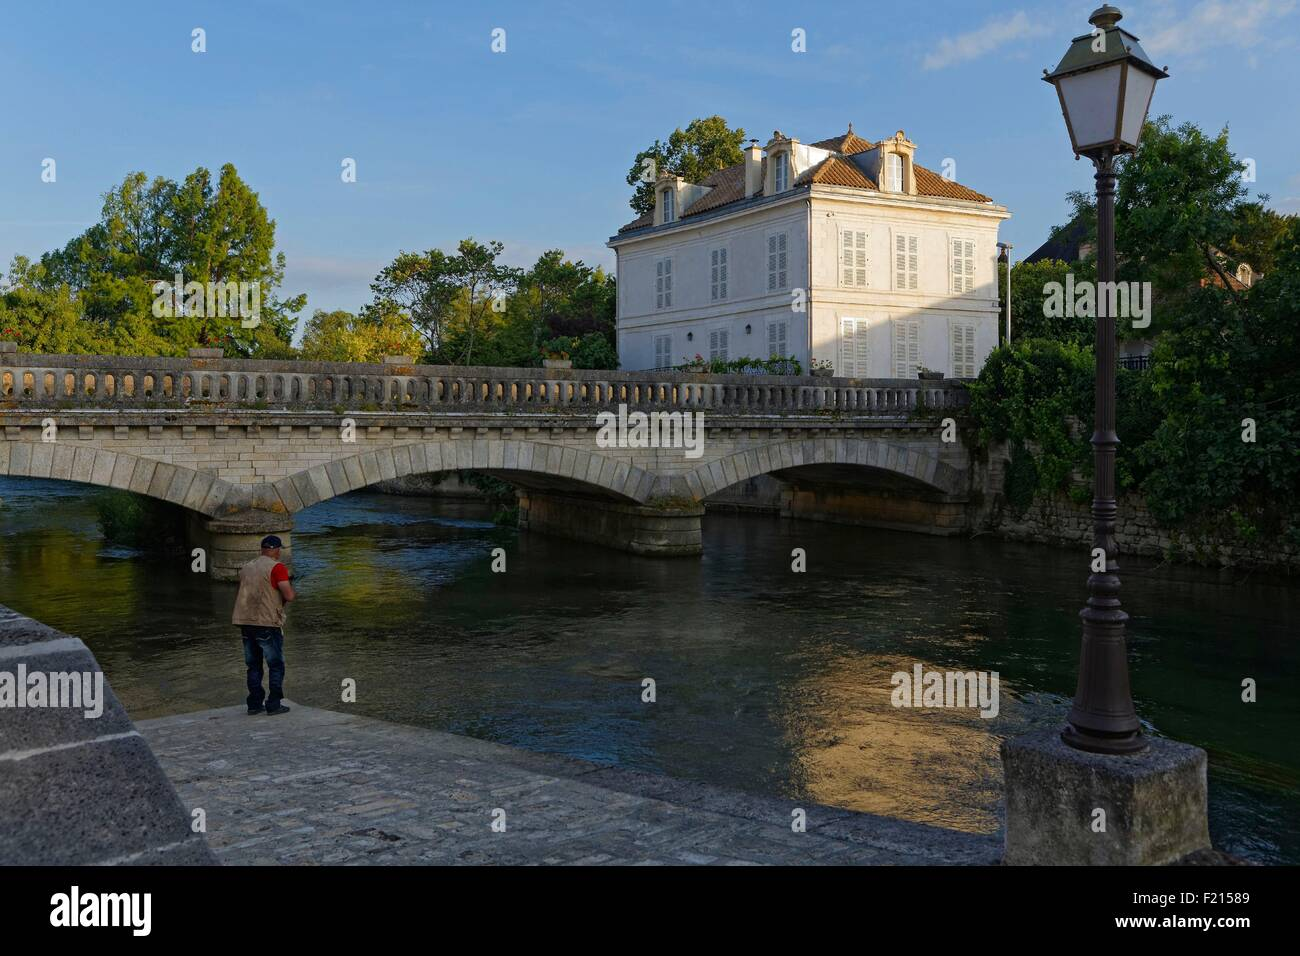 France, Charente, Montignac, fisherman on the Charente river - Stock Image